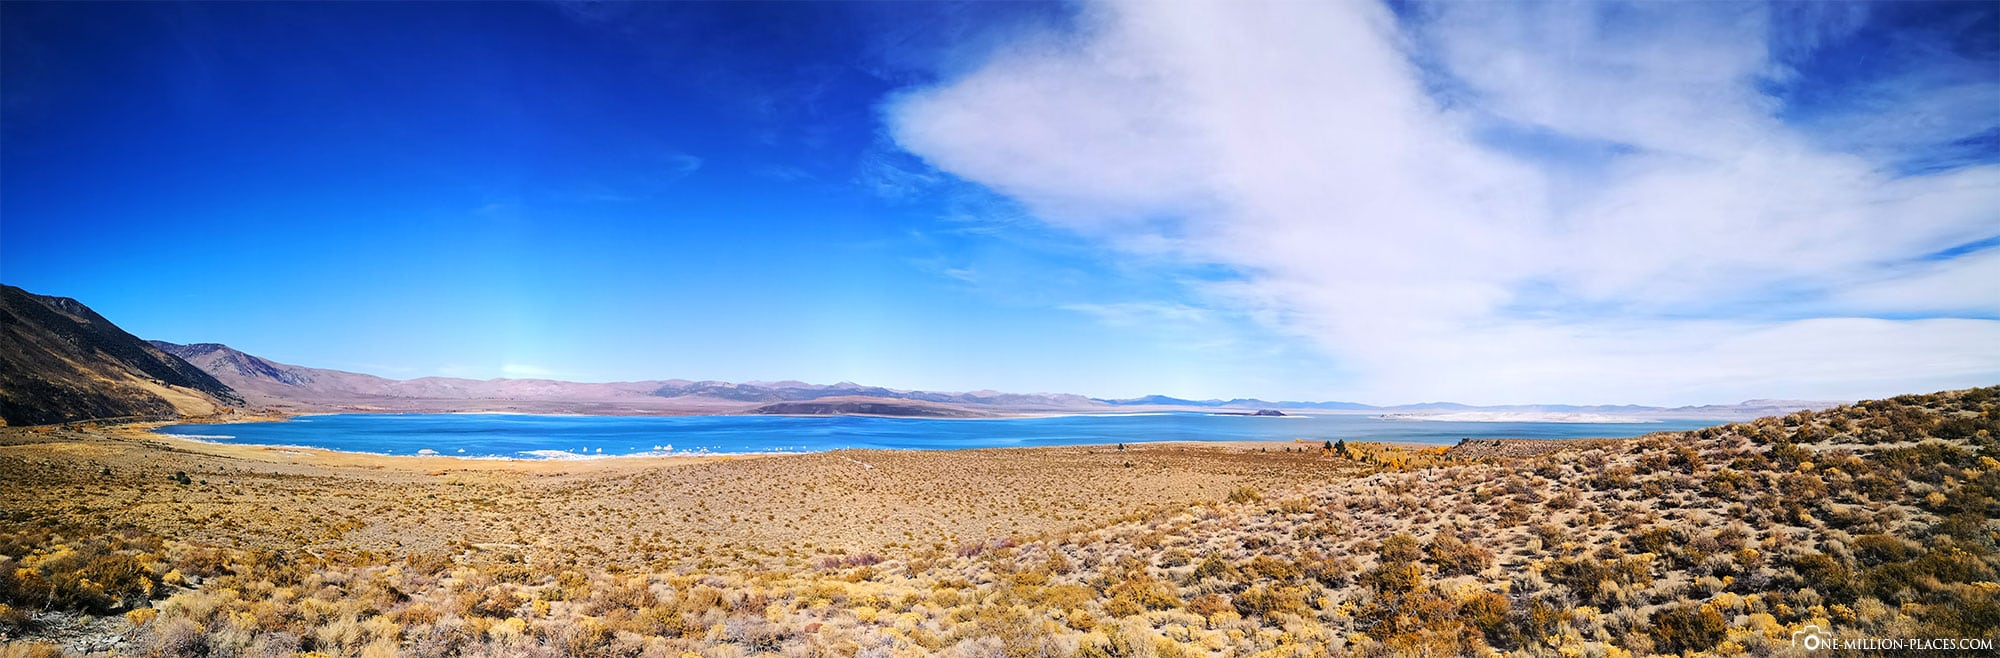 Mono Lake, Panoramic View, California, USA